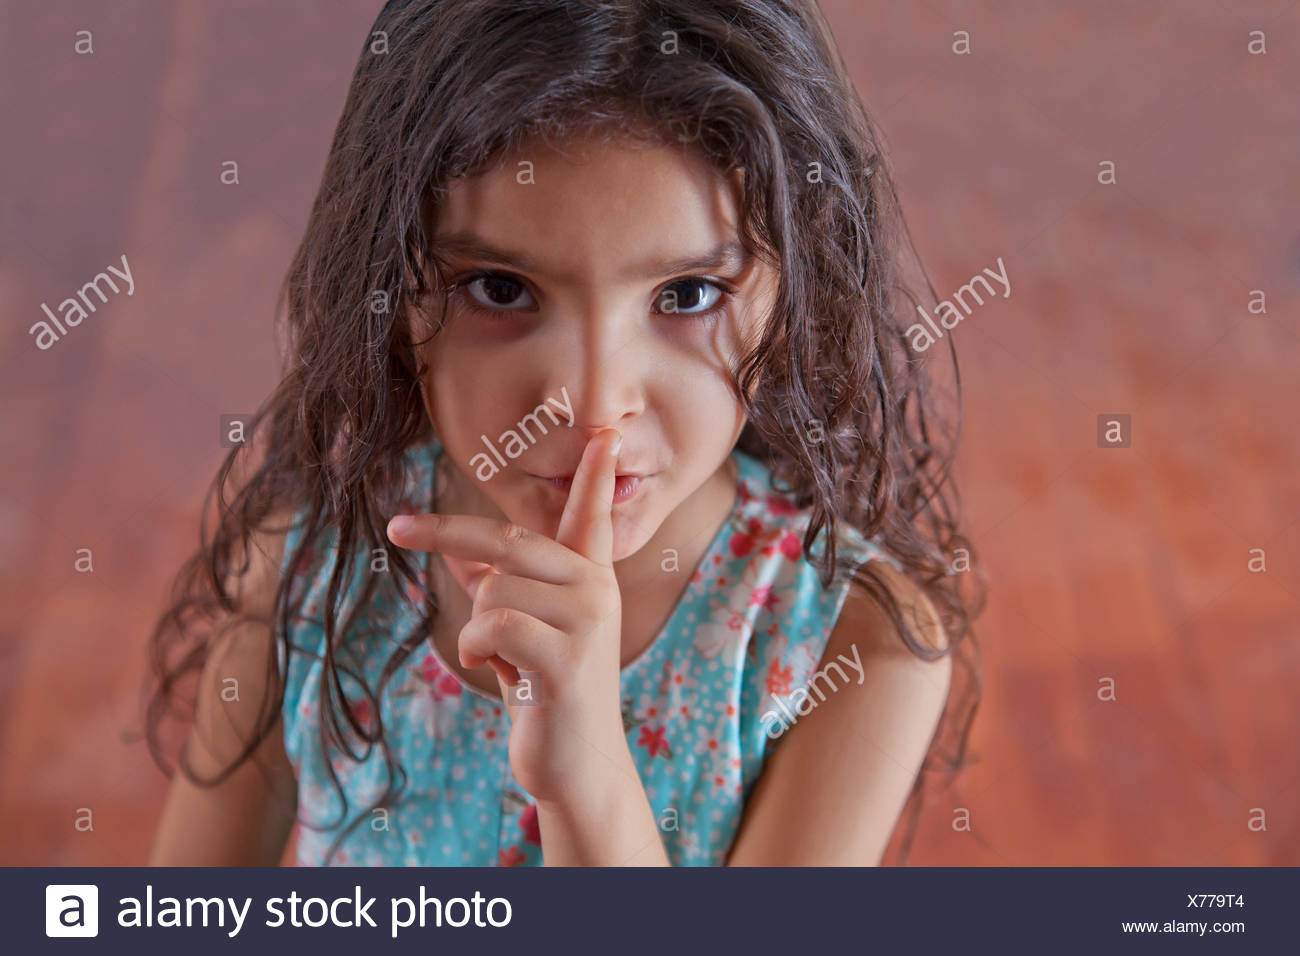 Portrait of girl with finger on lips - Stock Image